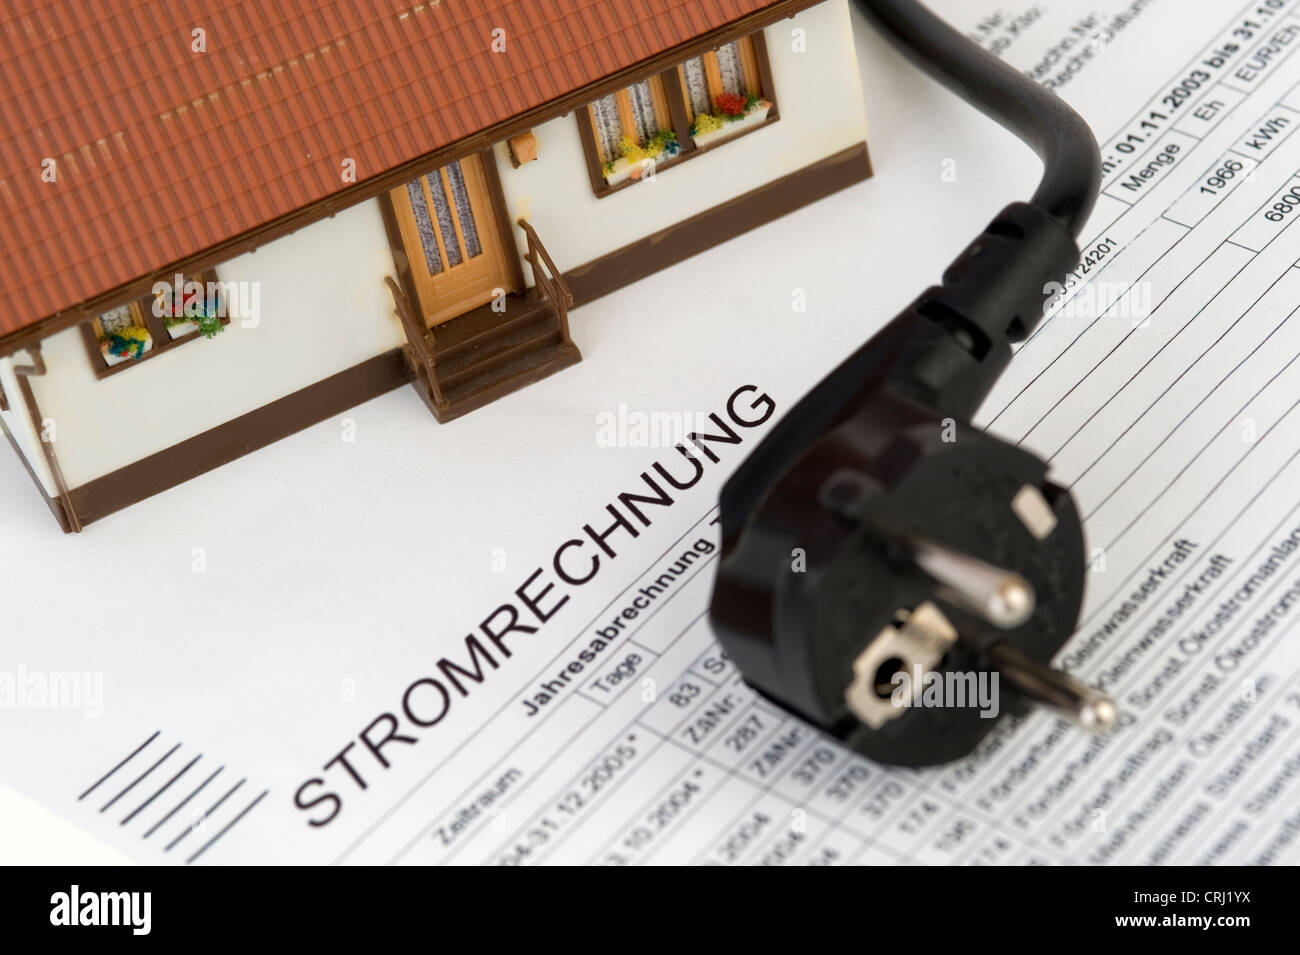 symbolic for energy consumption costs - Stock Image